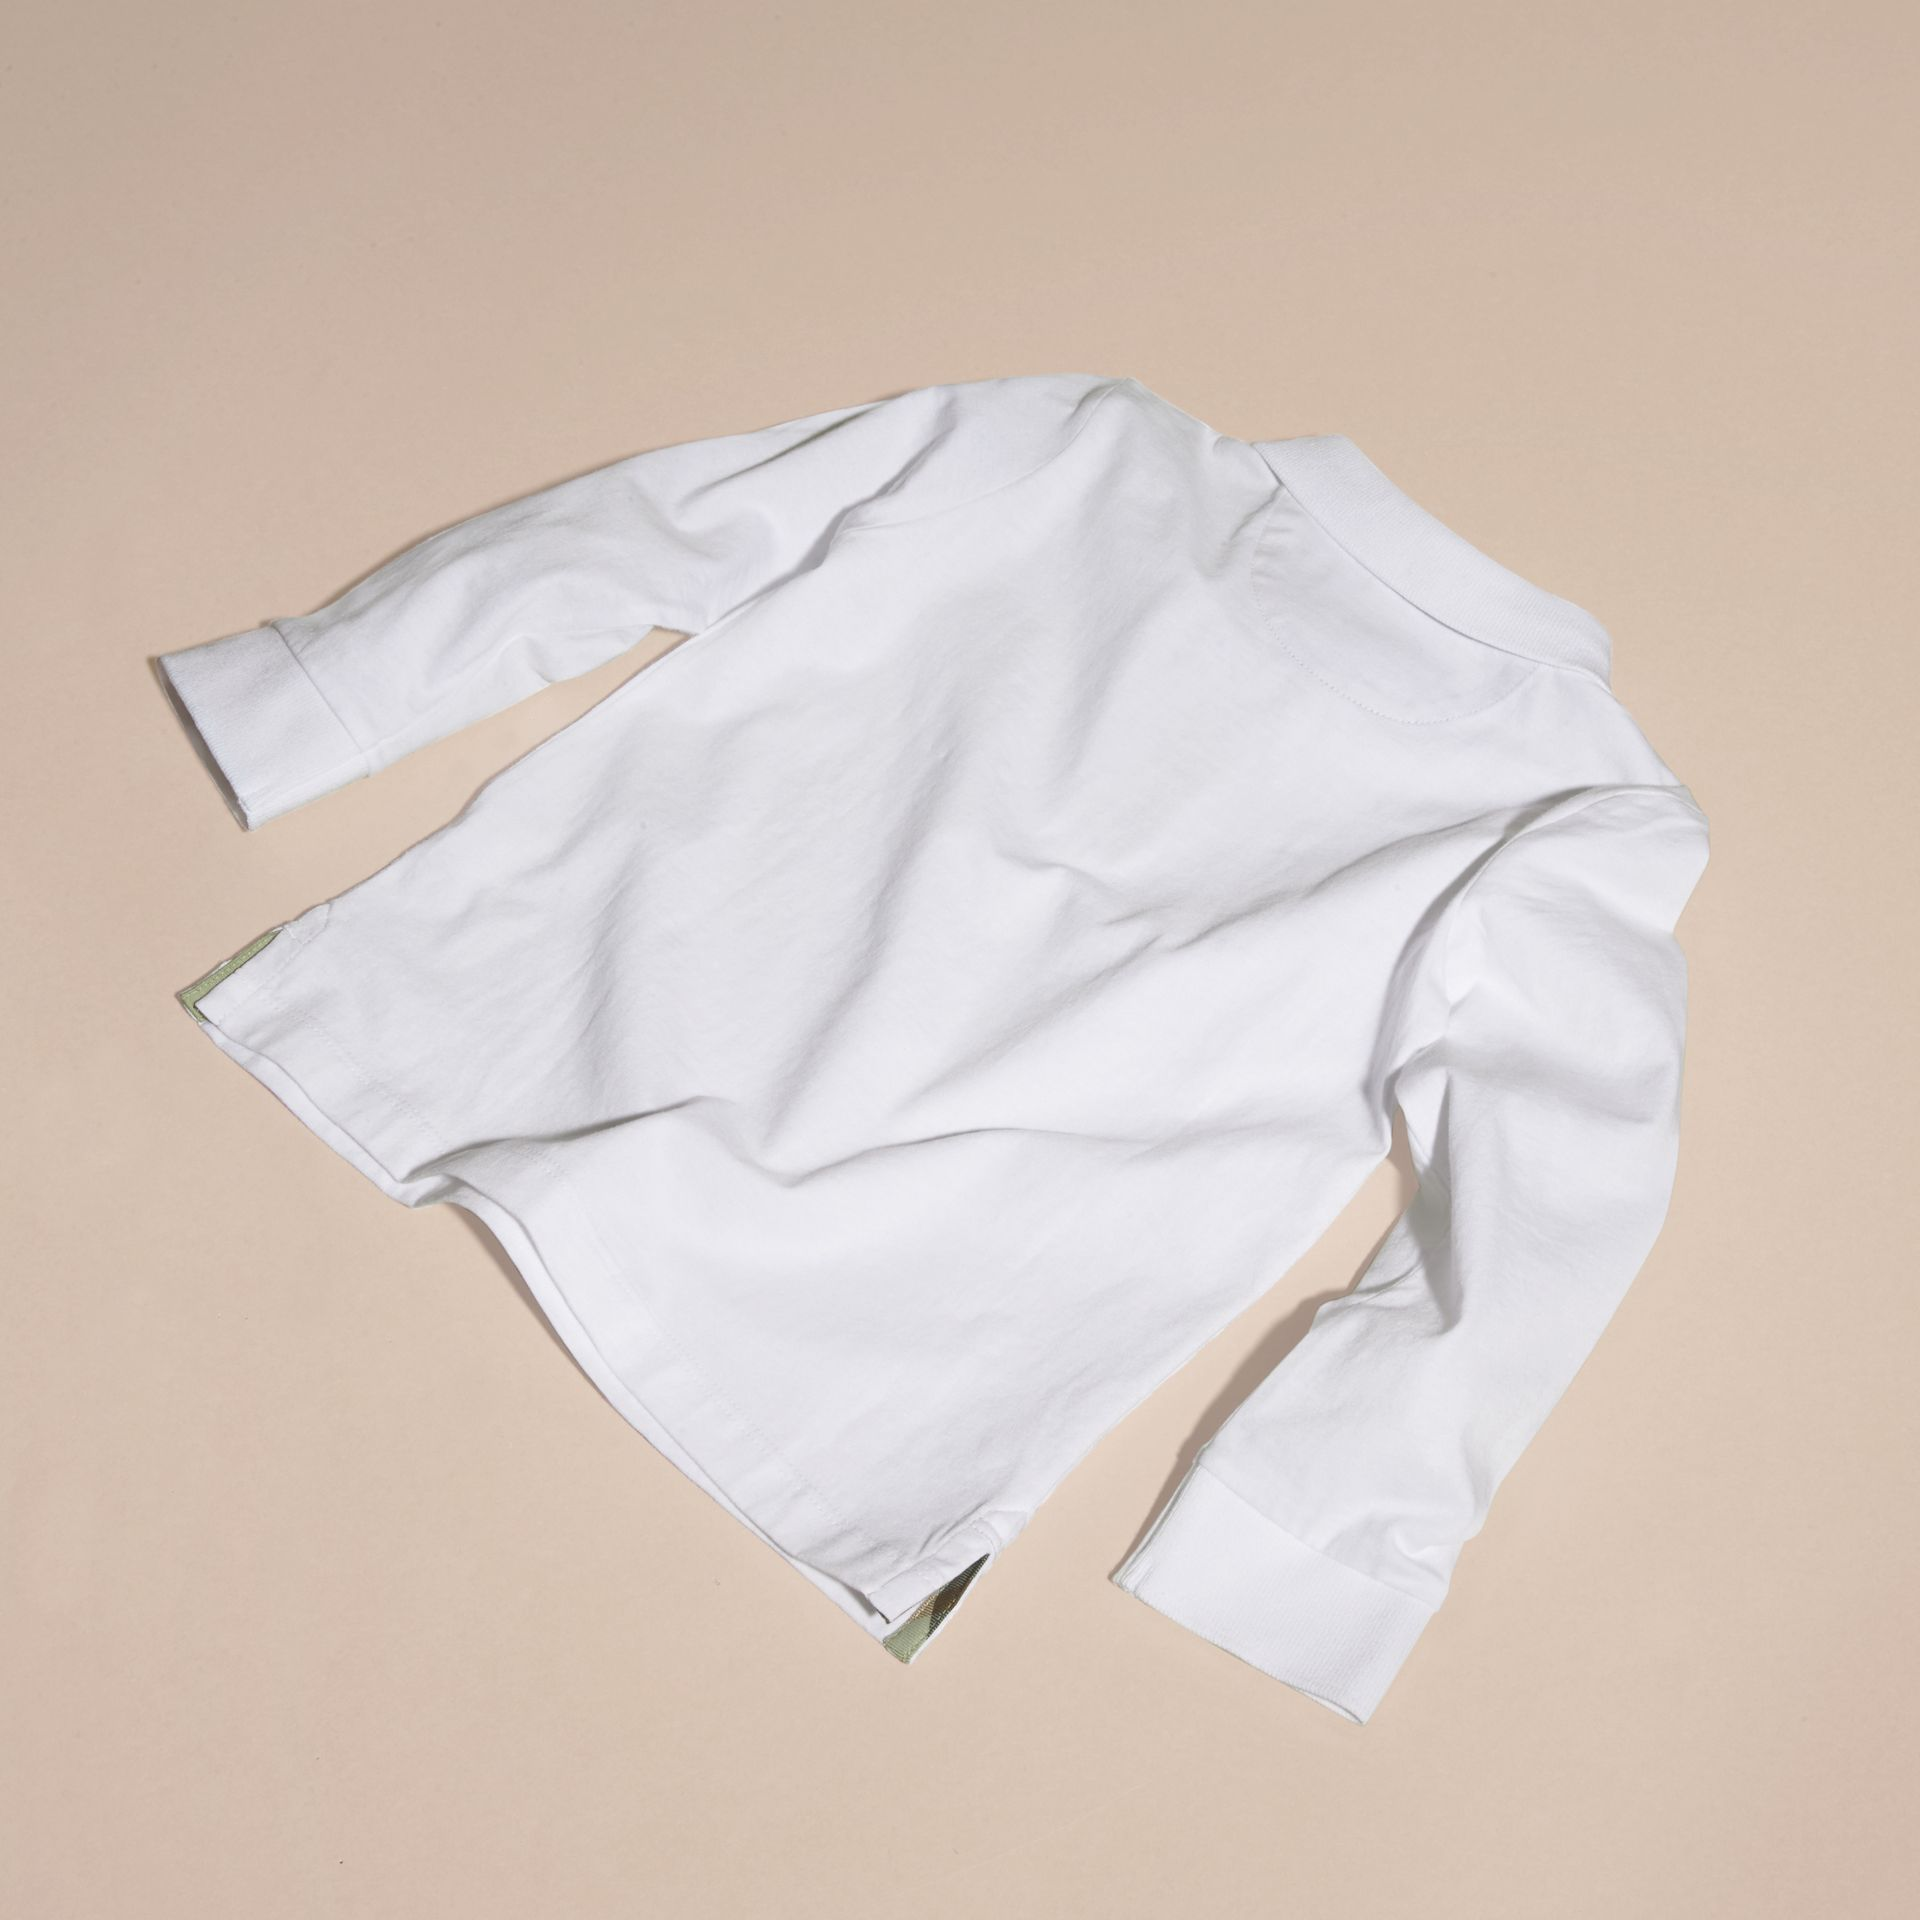 White Long-sleeved Cotton Polo Shirt White - gallery image 4